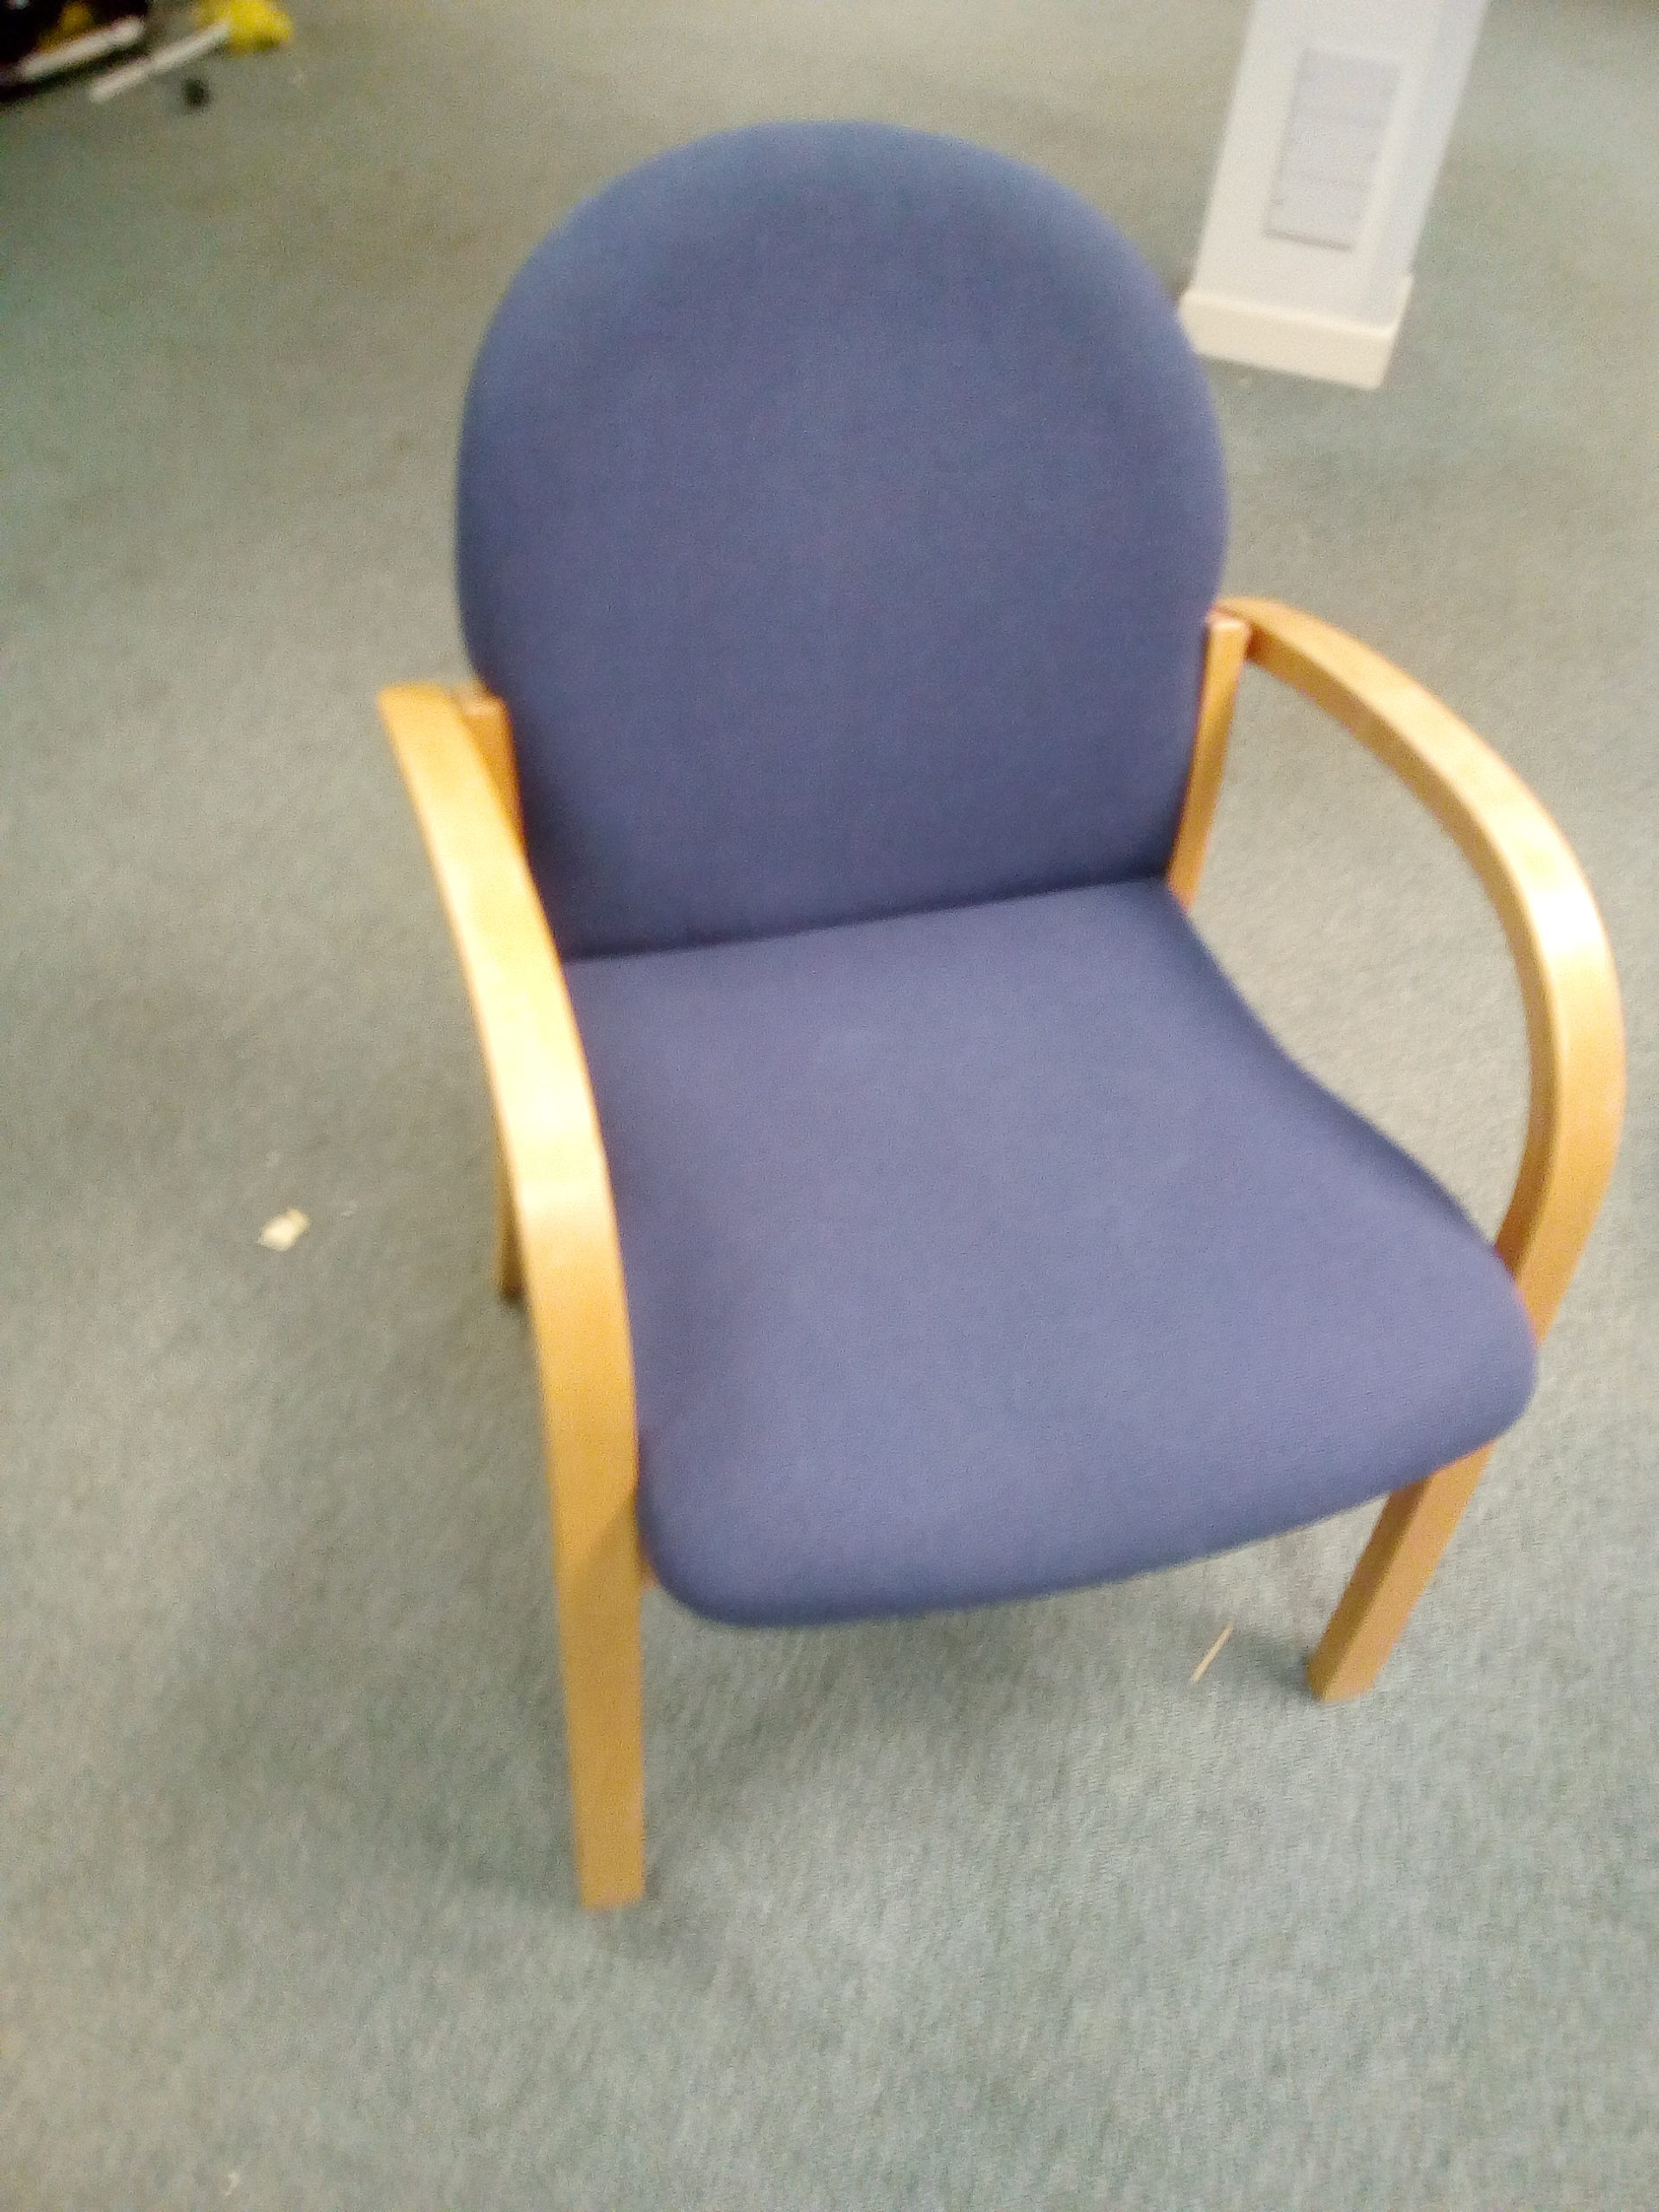 Reception Chair - Pre-owned